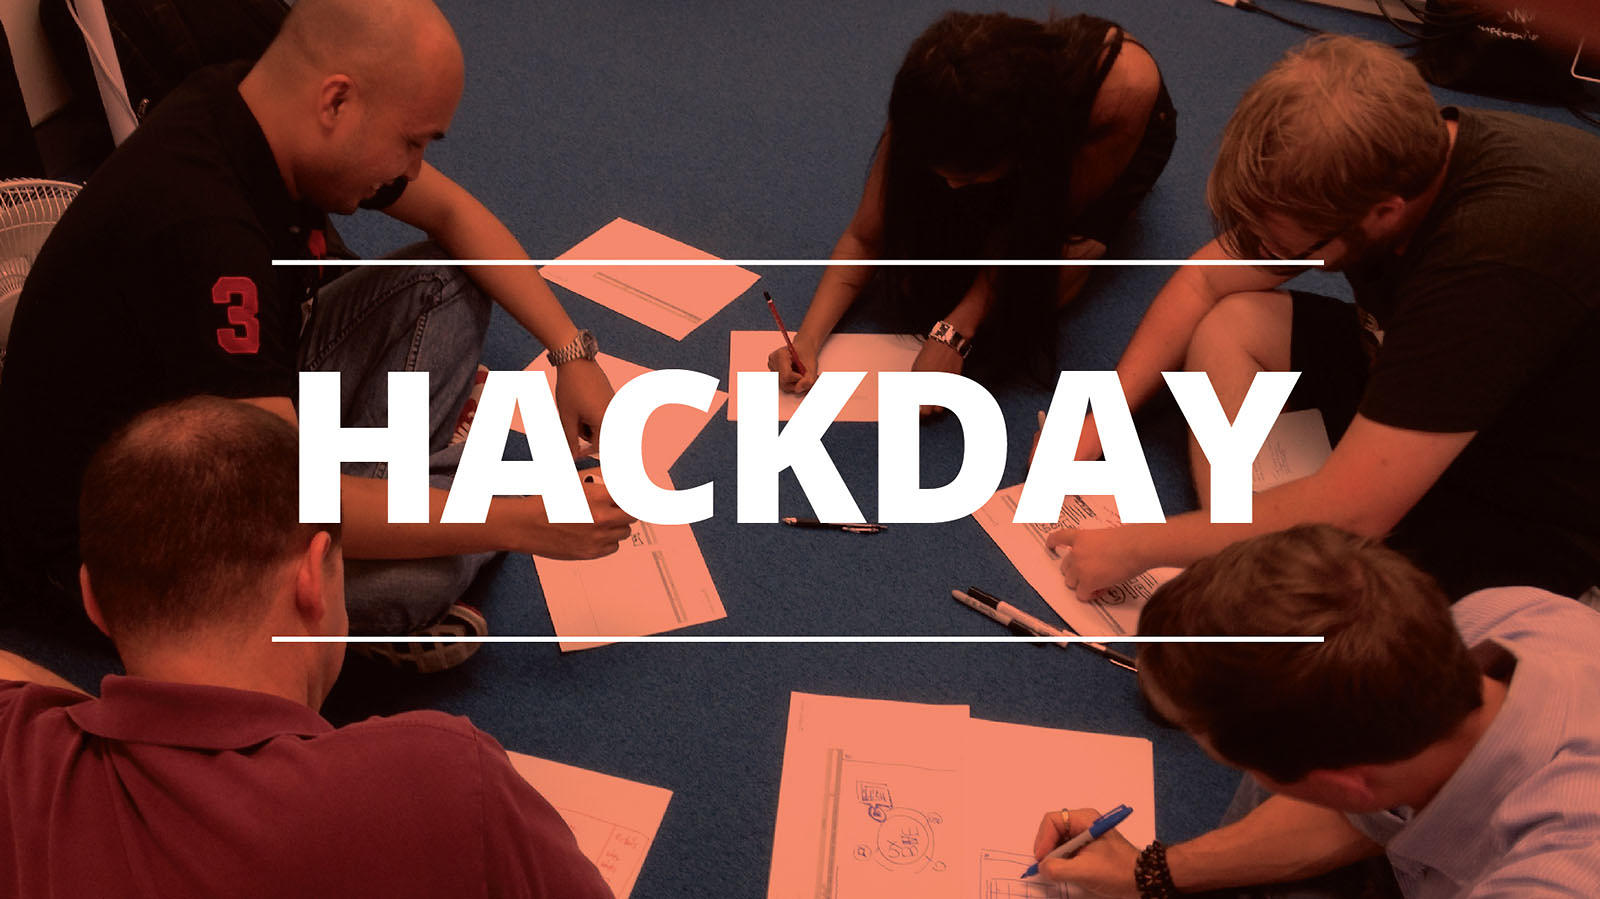 Hack day logo